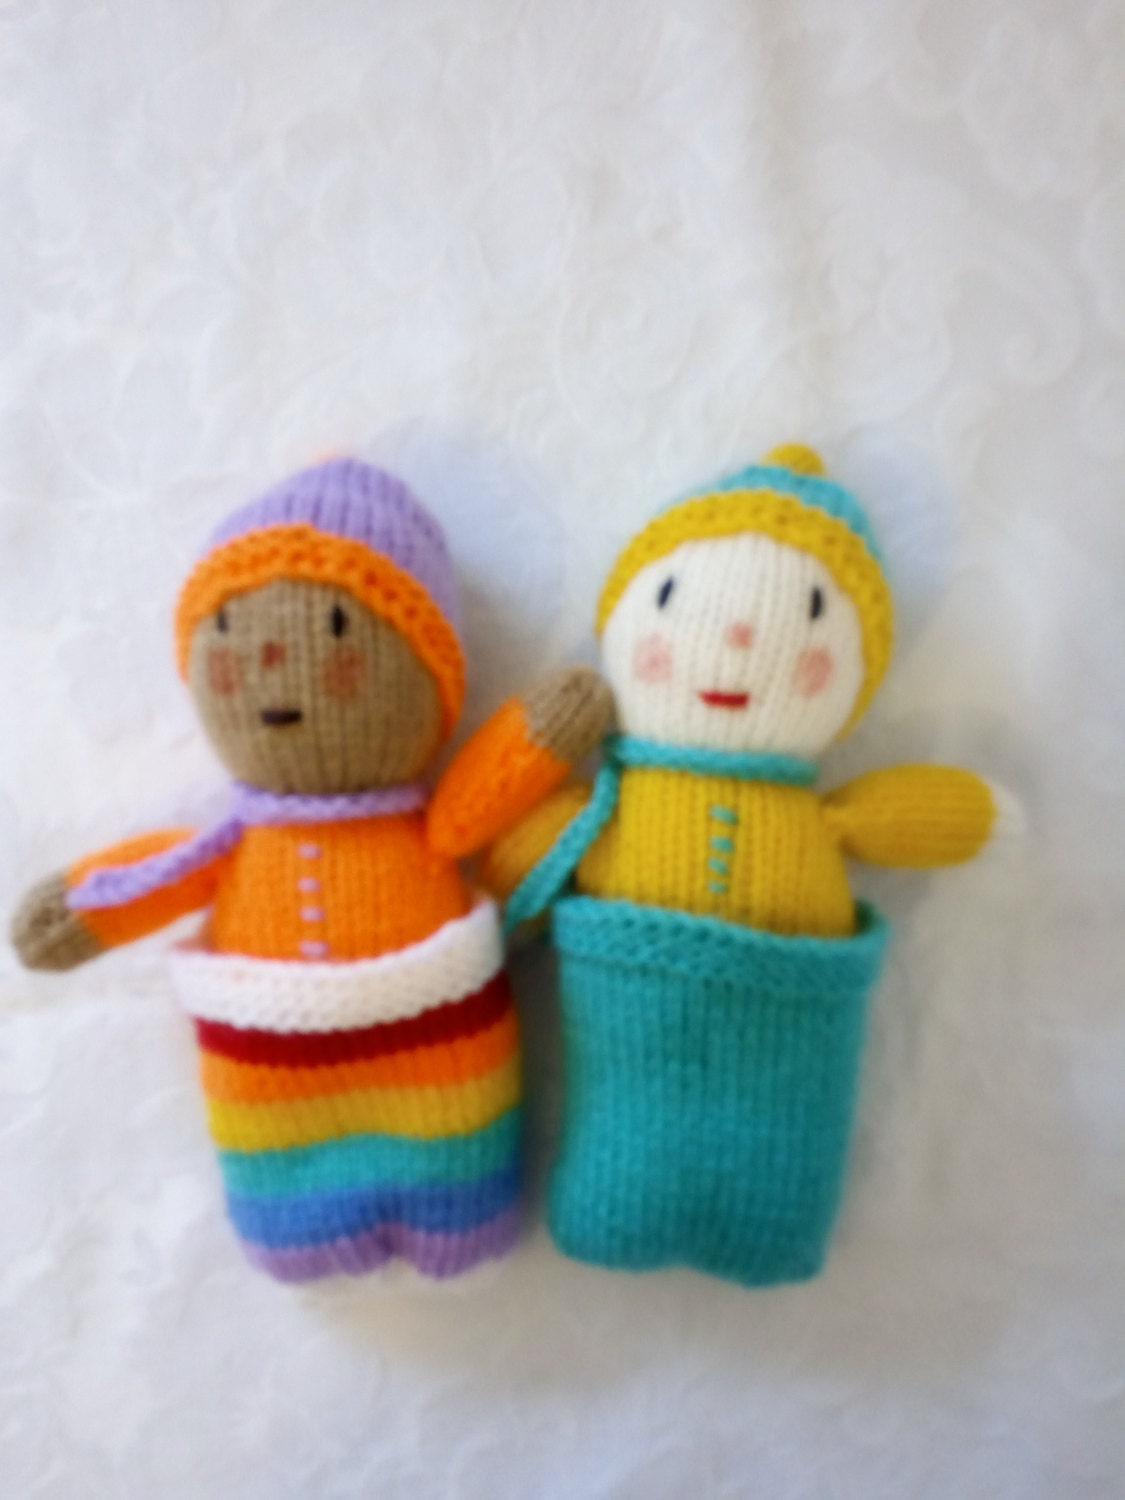 Adorable hand knitted babies in sleeping sacks and caps designed by Jean Greenhowe knitted by Liz